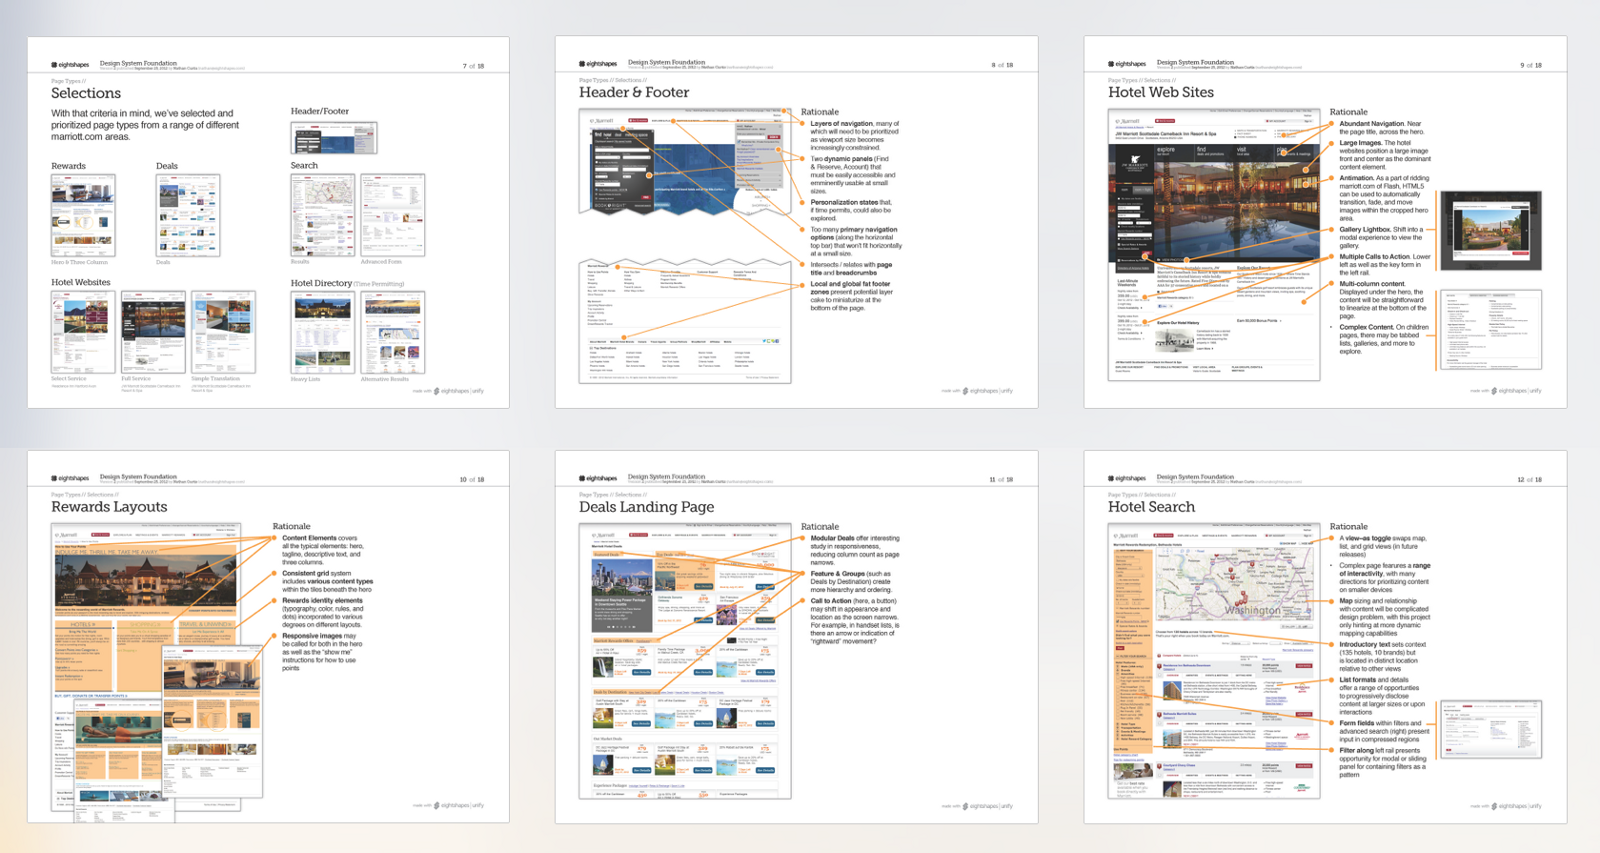 Marriott.com planning doc, describing the rationale to design each page, back when we made such docs. 2012